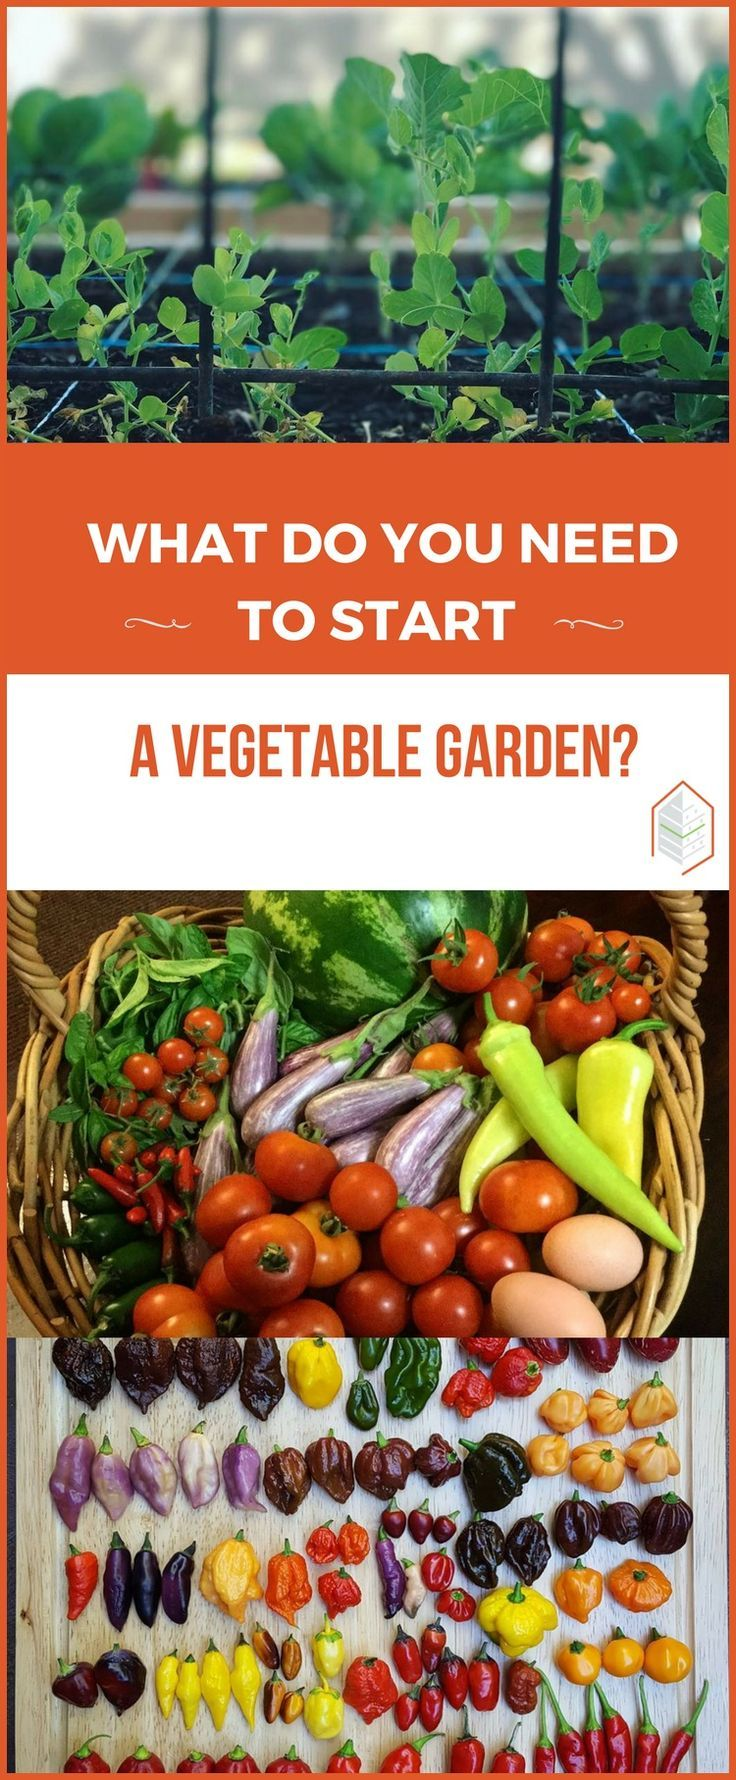 What Do You Need To Start A Vegetable Garden? A Guide